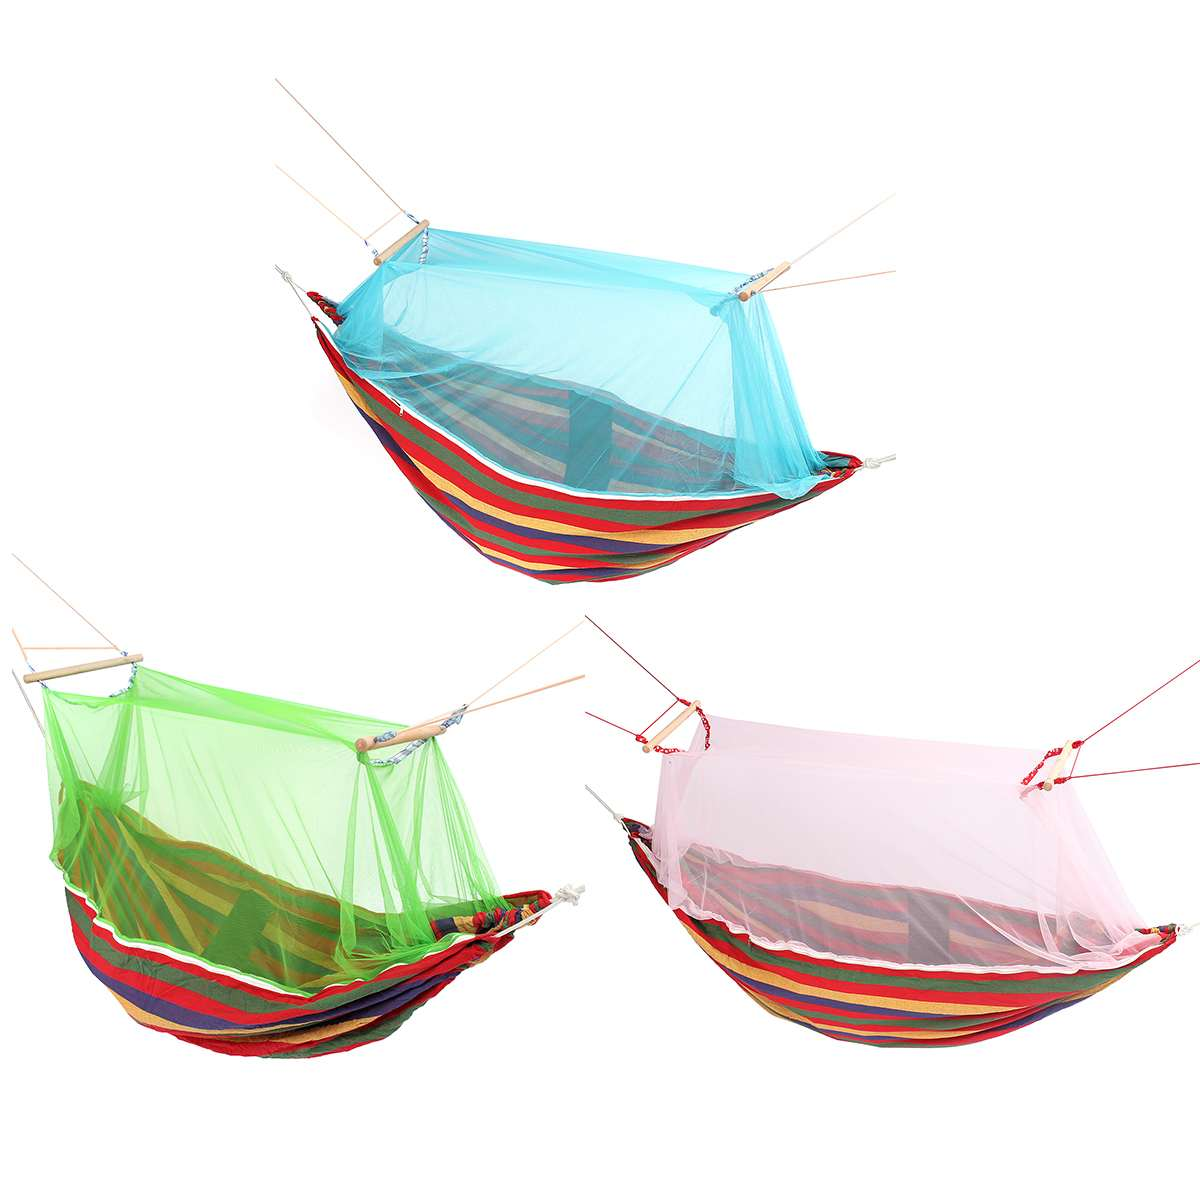 3 Color Outdoor Mosquito Net Parachute Hammock Portable Camping Hanging Sleeping Bed High Strength Sleeping Swing 190x150cm